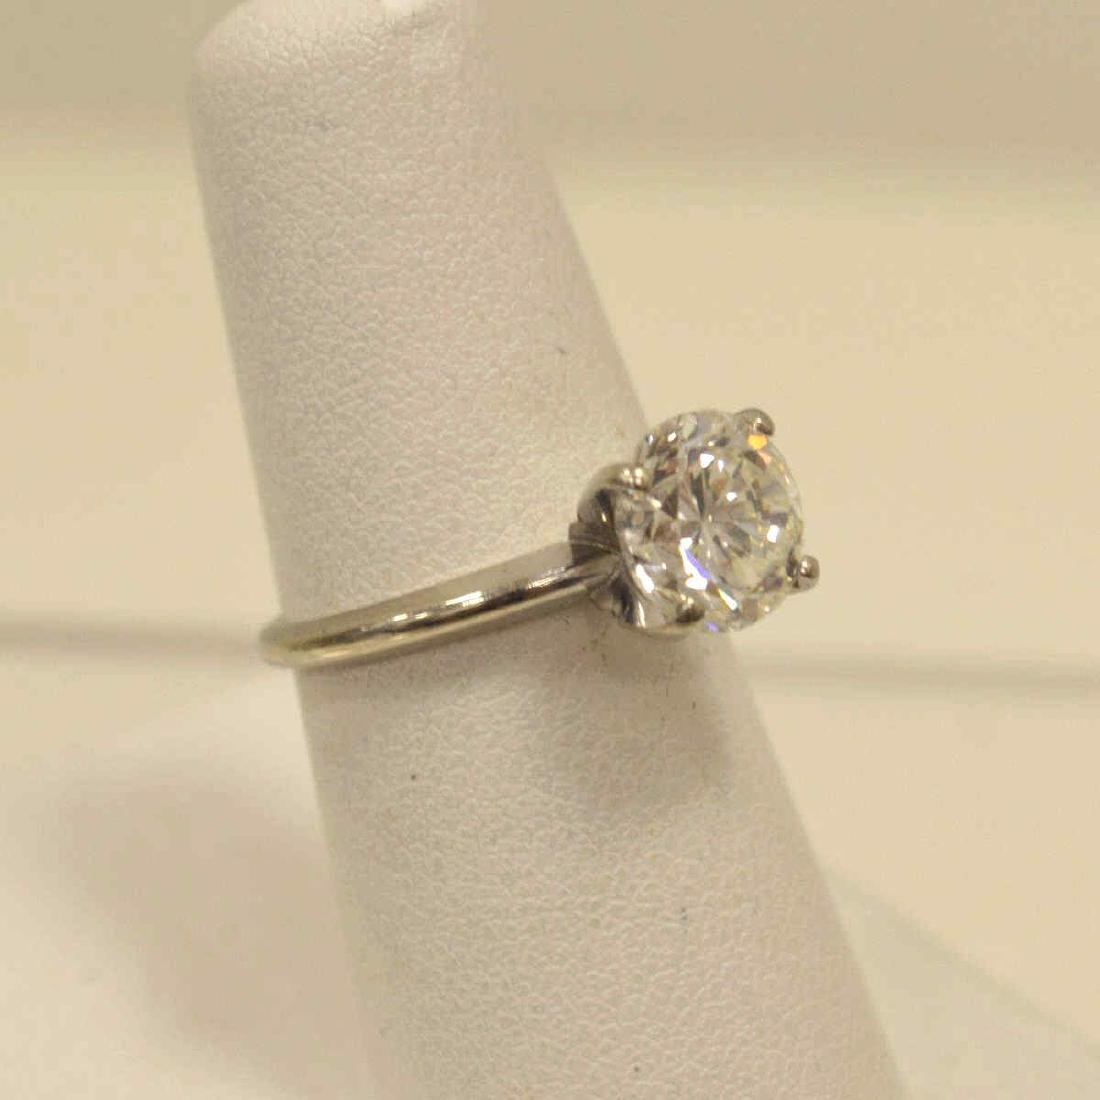 2.50ct. Diamond Solitaire Engagement Ring - 2